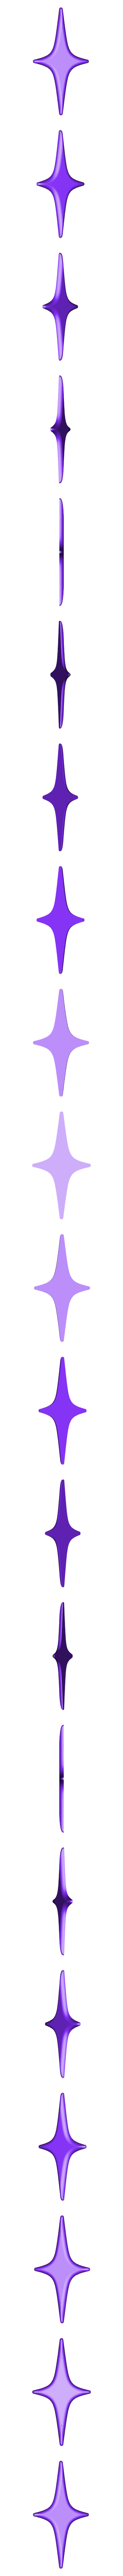 Space Decals_ Star H.stl Download free STL file Space Decals • 3D printing template, Hom3d